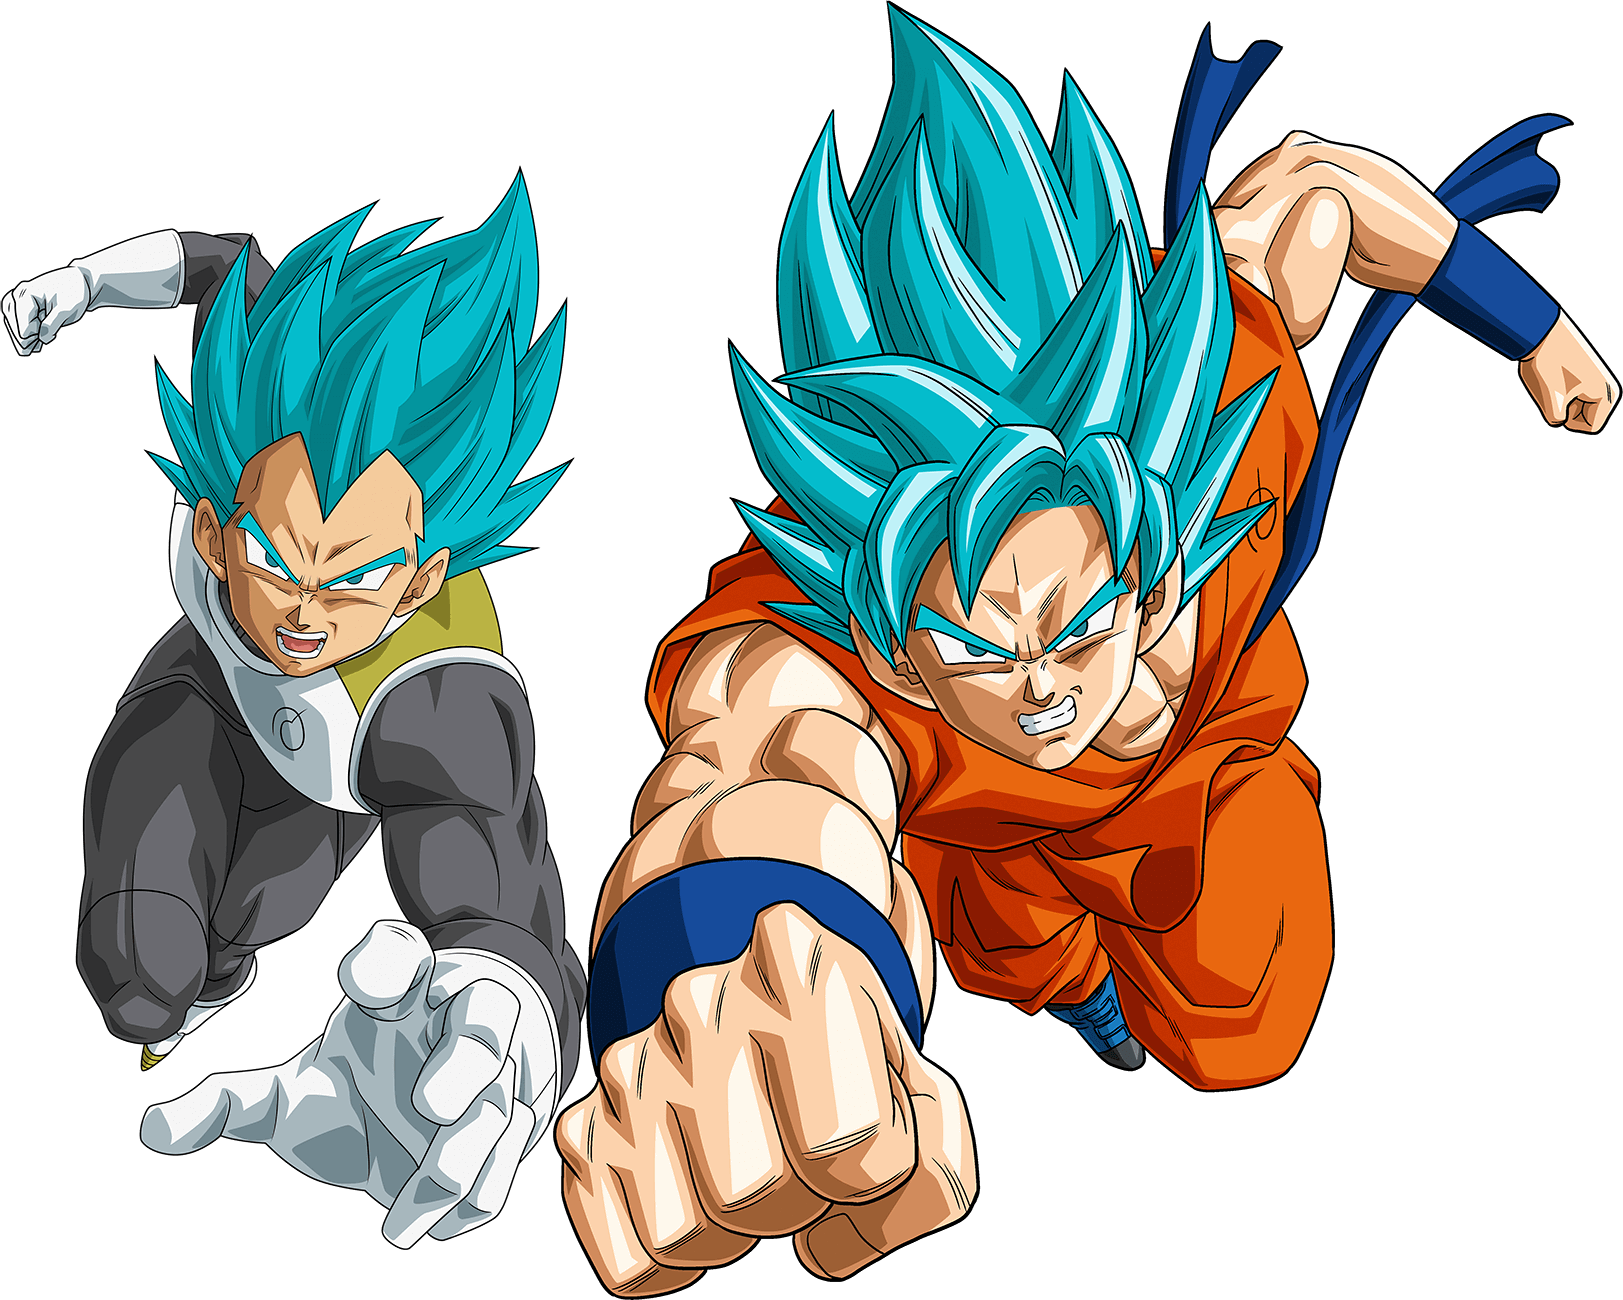 Dragon Ball Super FUNimation Dub Official Discussion Thread